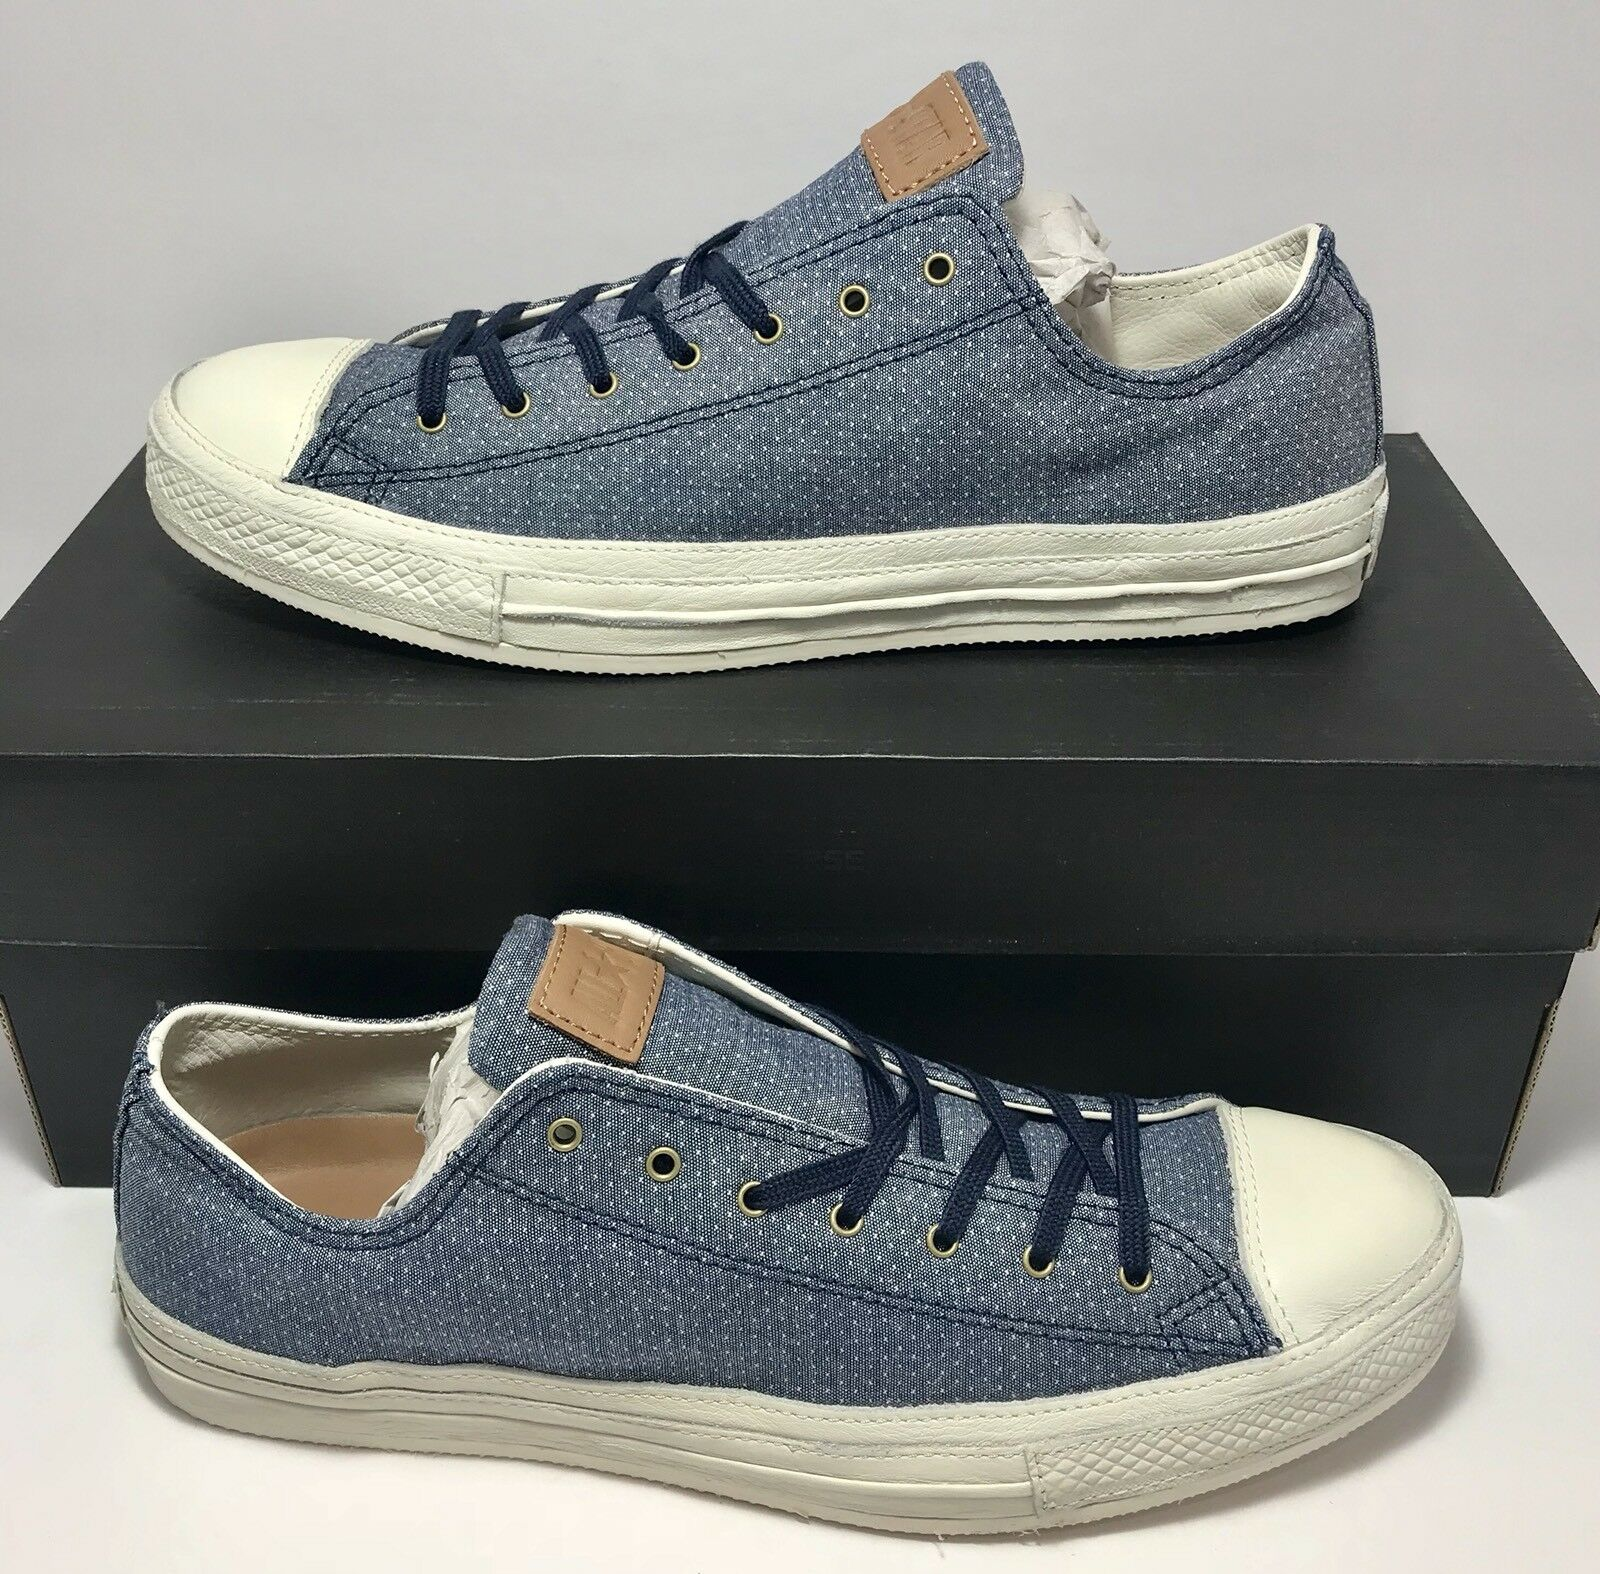 125 Converse Mens Size 10 Vegan Collectors CT Post OX Blue Shoes Sneakers New